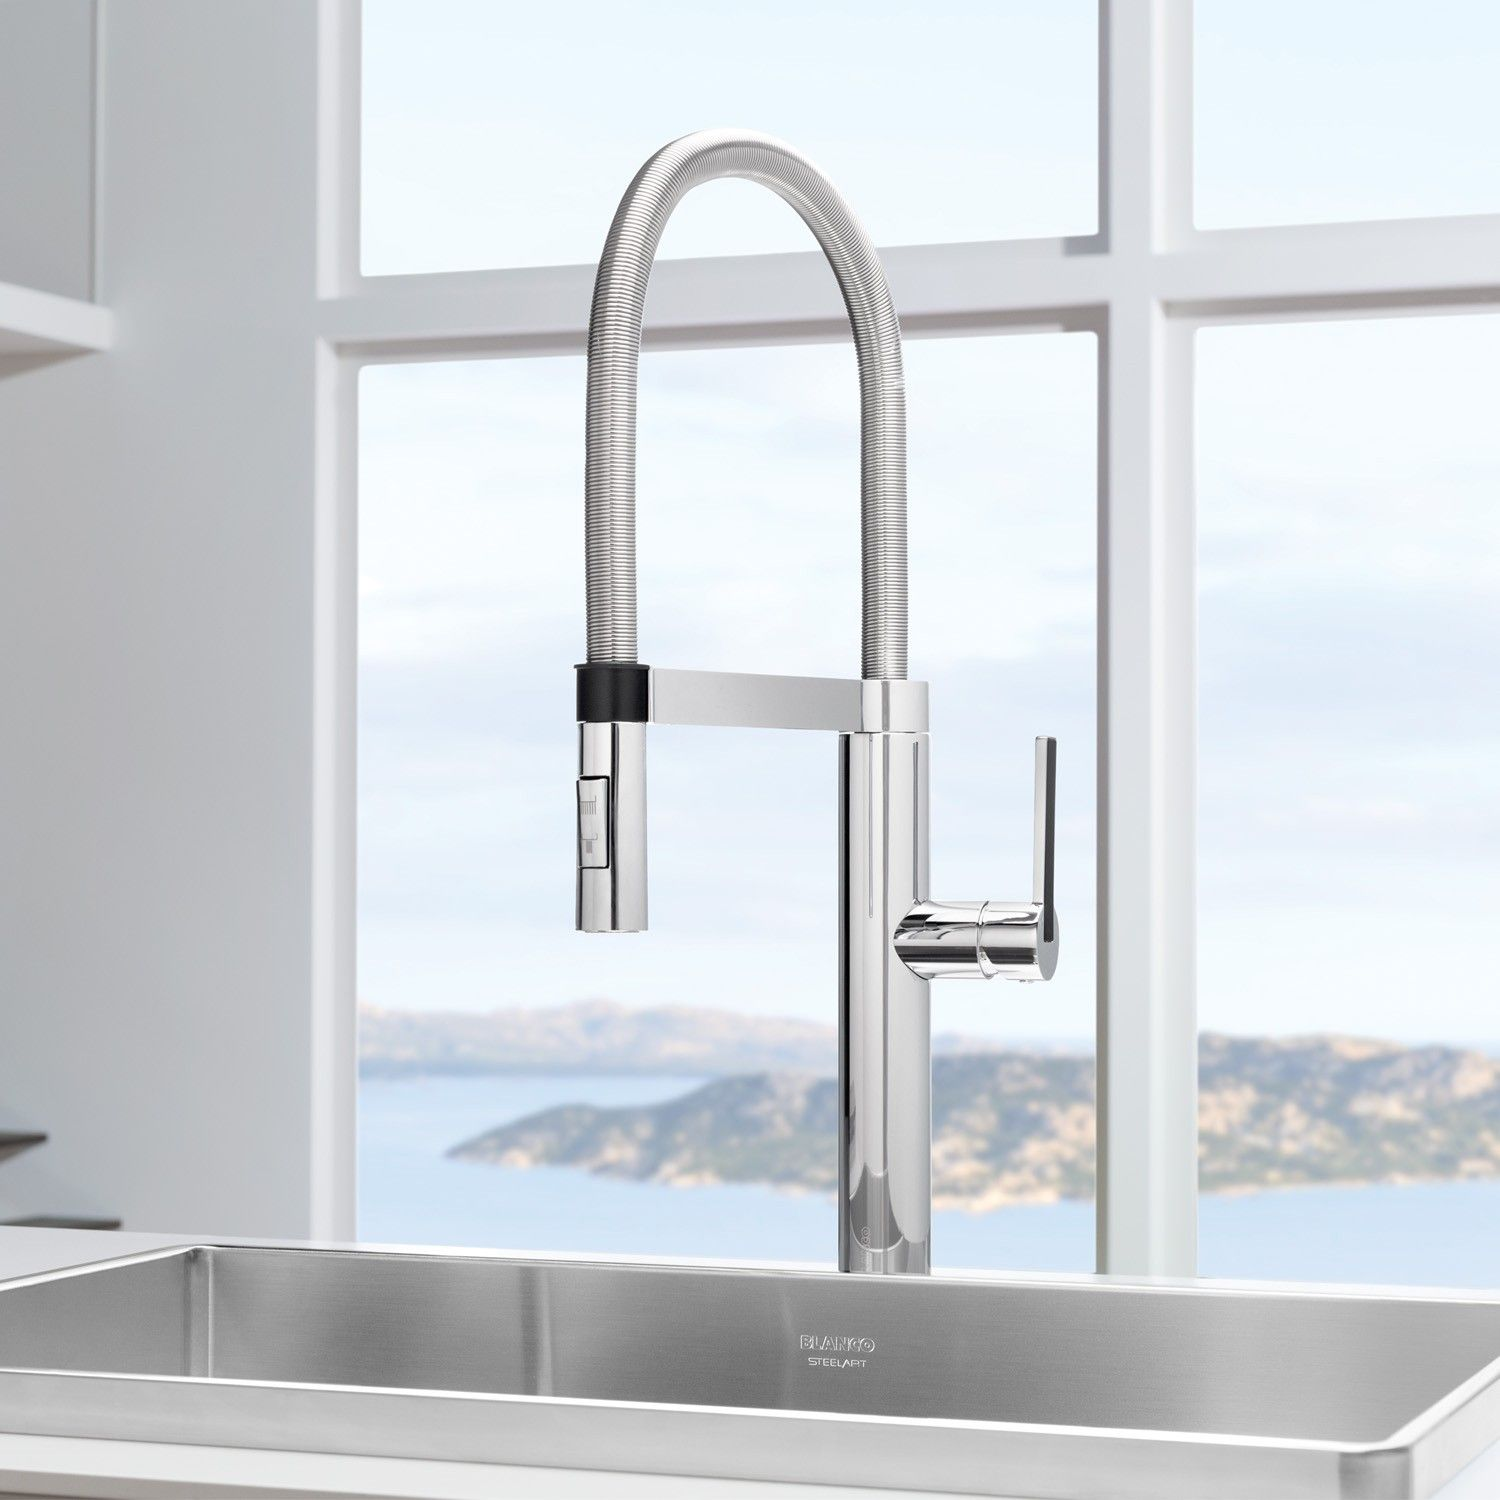 Bon Culina Semi Pro Kitchen Faucet 44133 By Blanco | YLiving